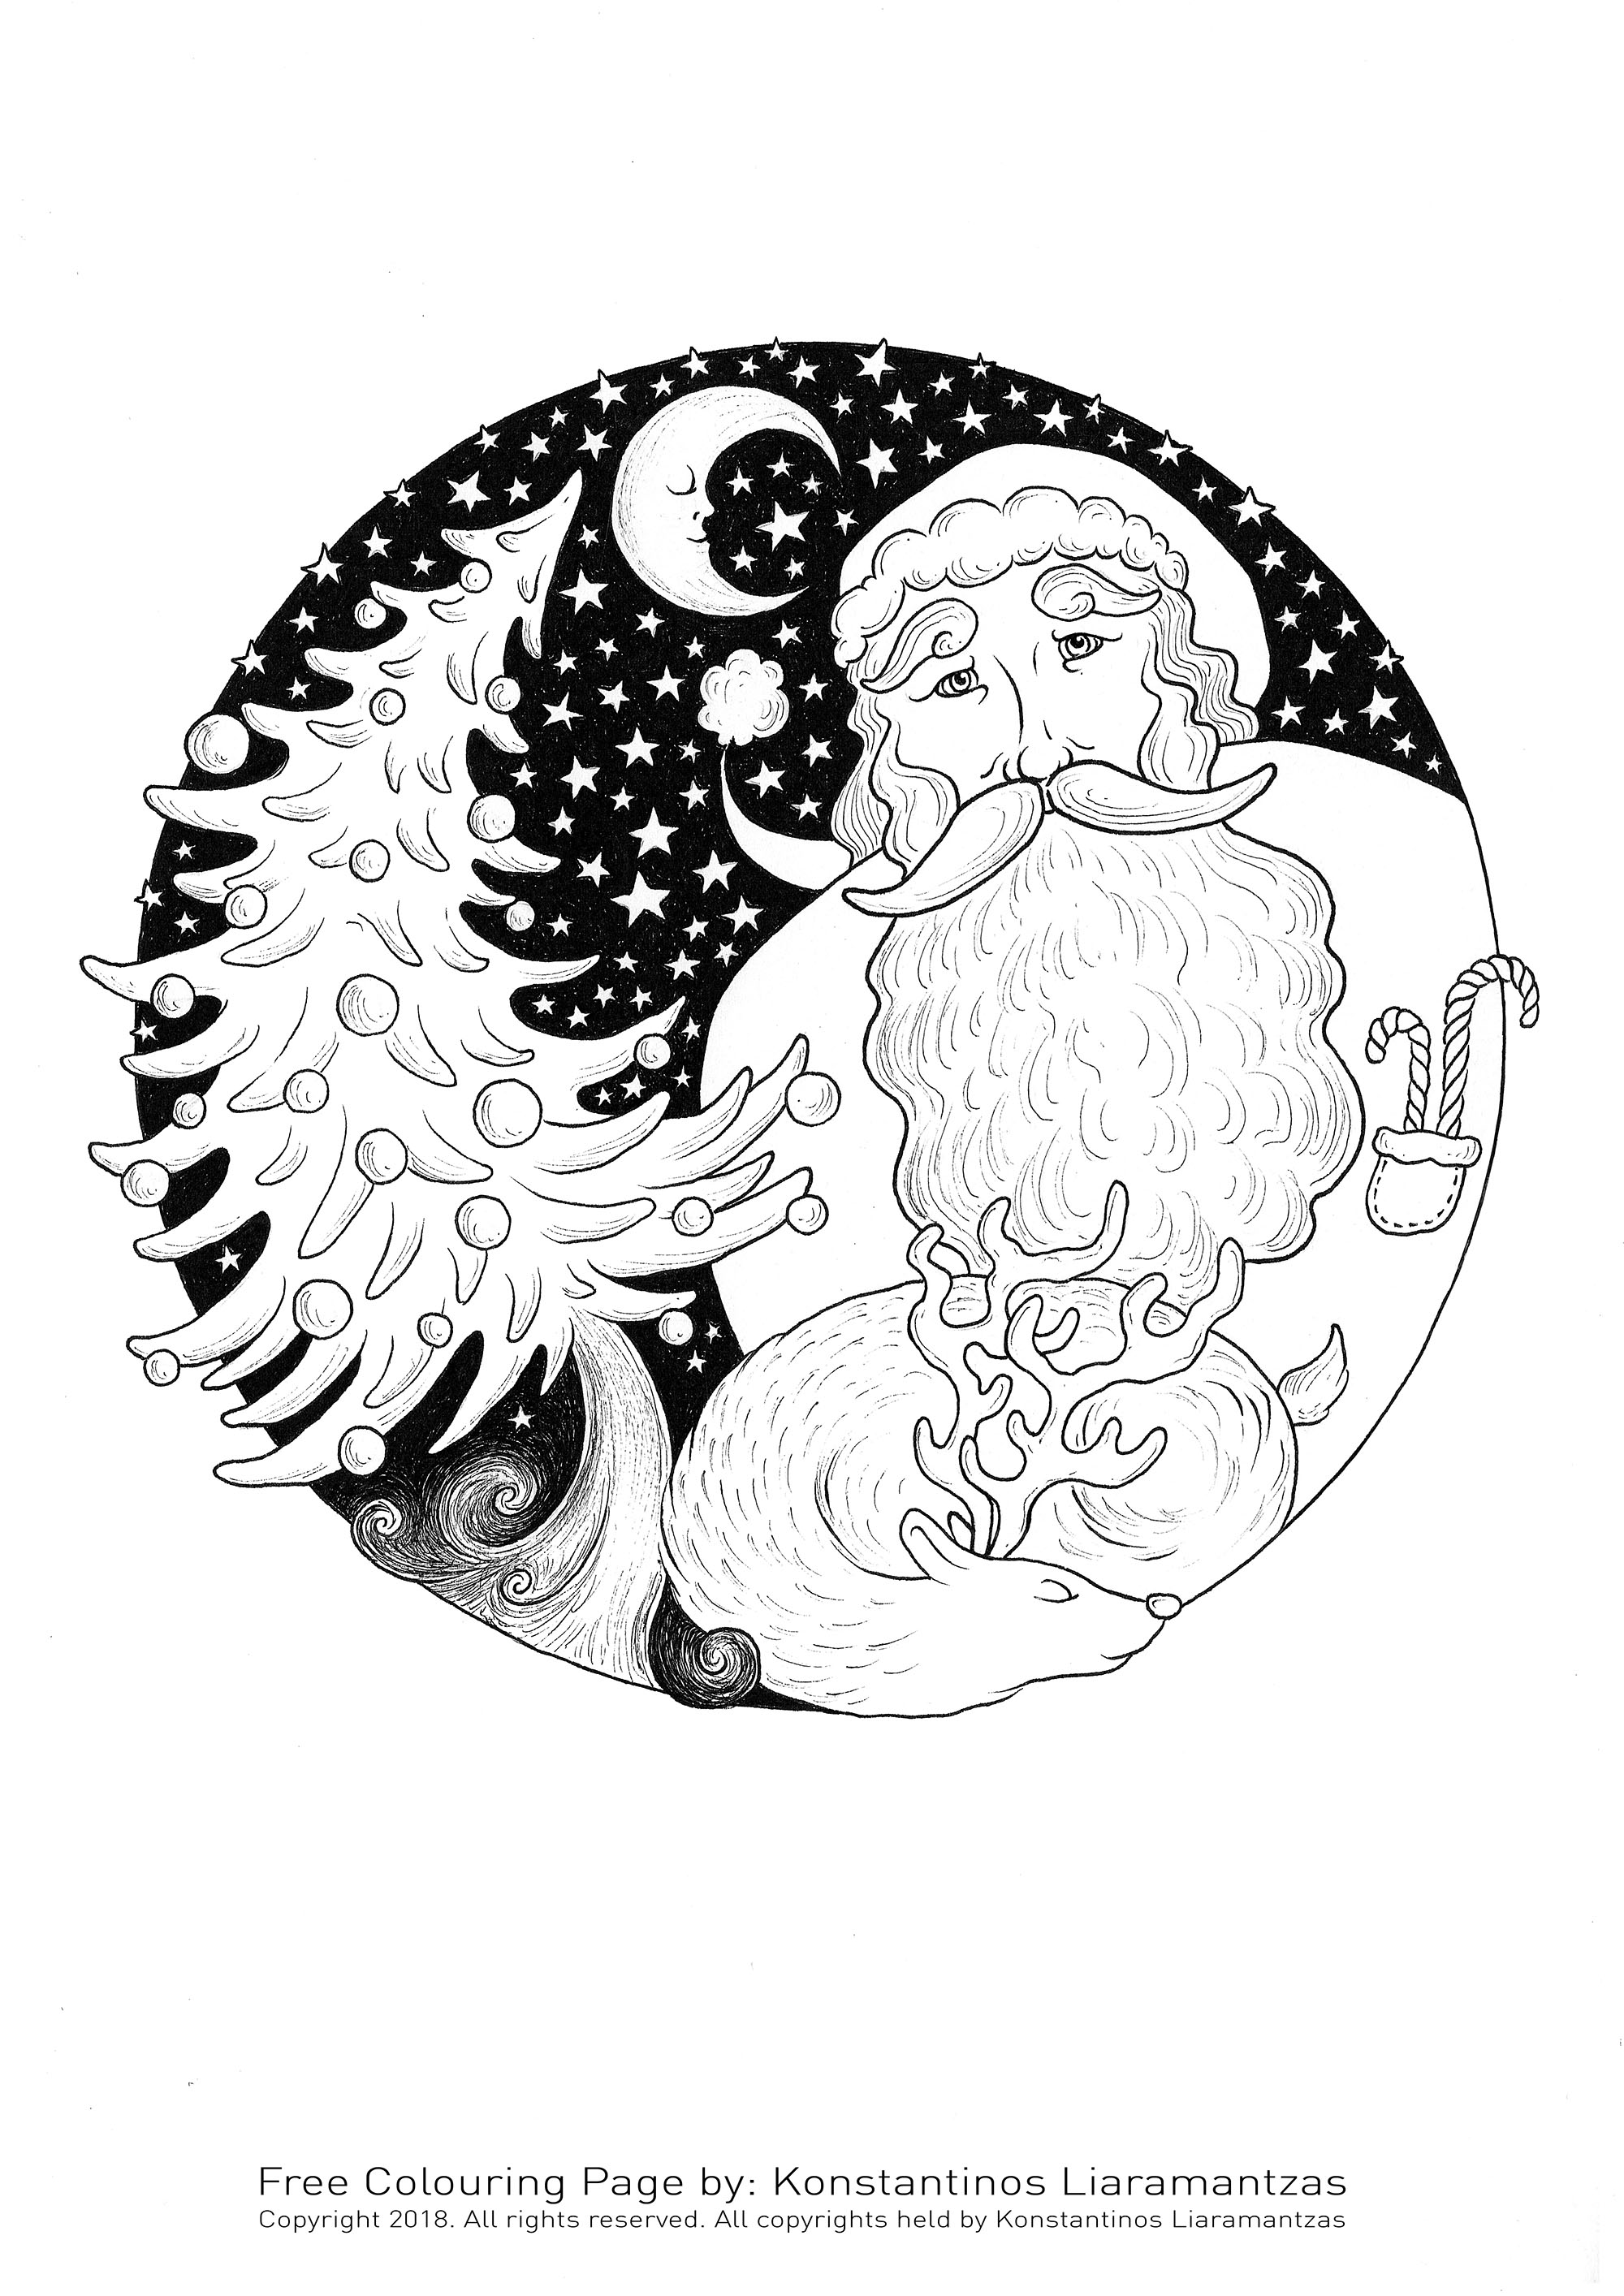 Santa Claus during a starry night with his sleeping reindeer